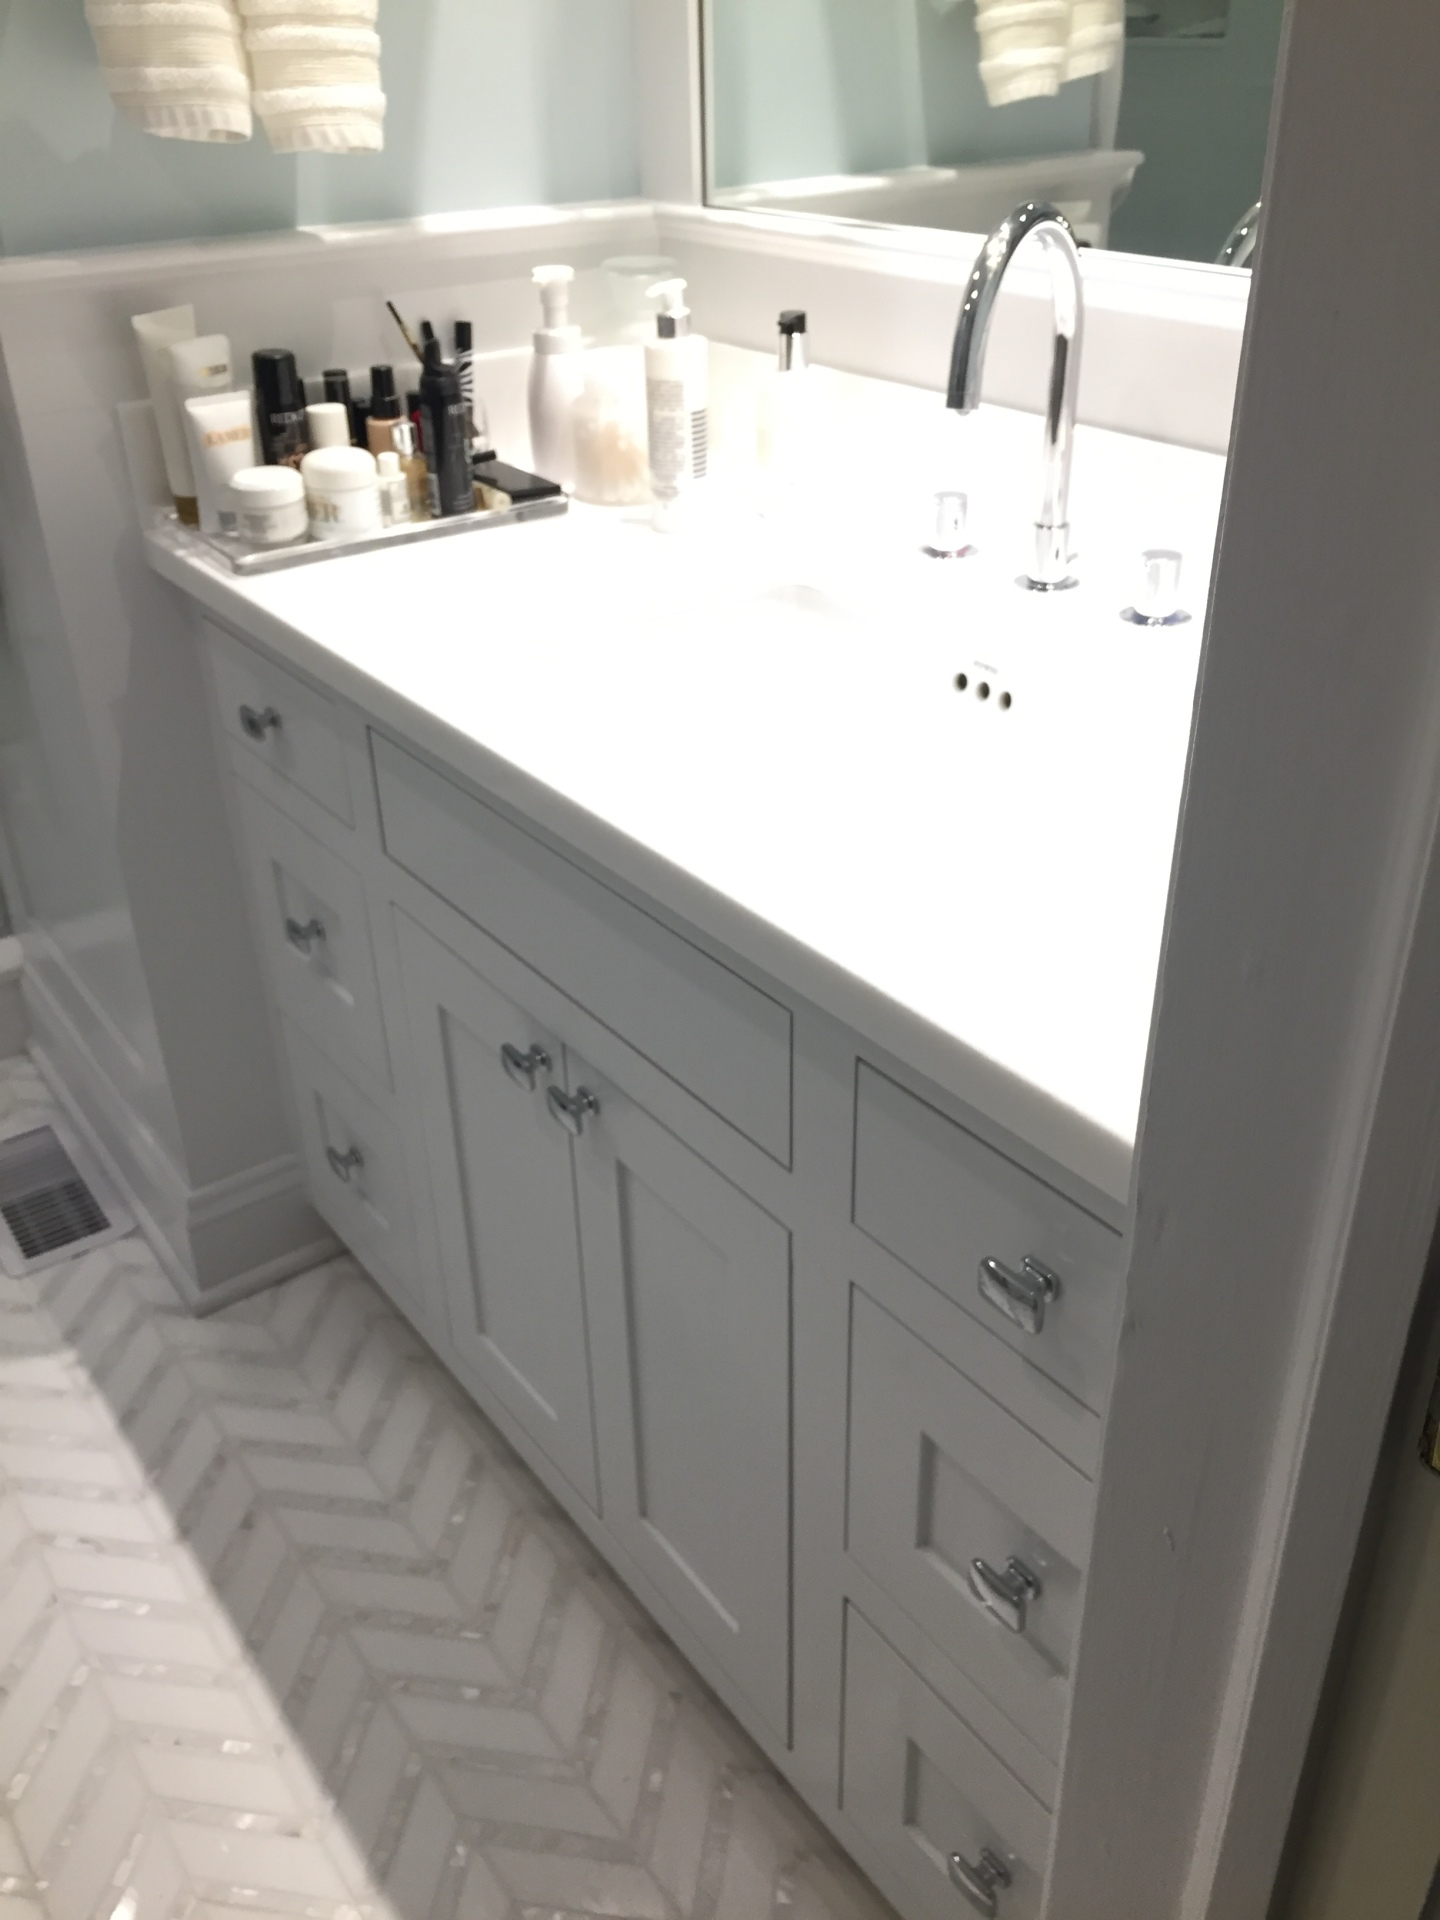 """<p style=""""font-size: 14px;"""">Chevron 2. White Thassos Marble 1-5/8 x 5"""" with Mother of Pearl 1/2 x 5"""" Lines Polished Mosaic"""